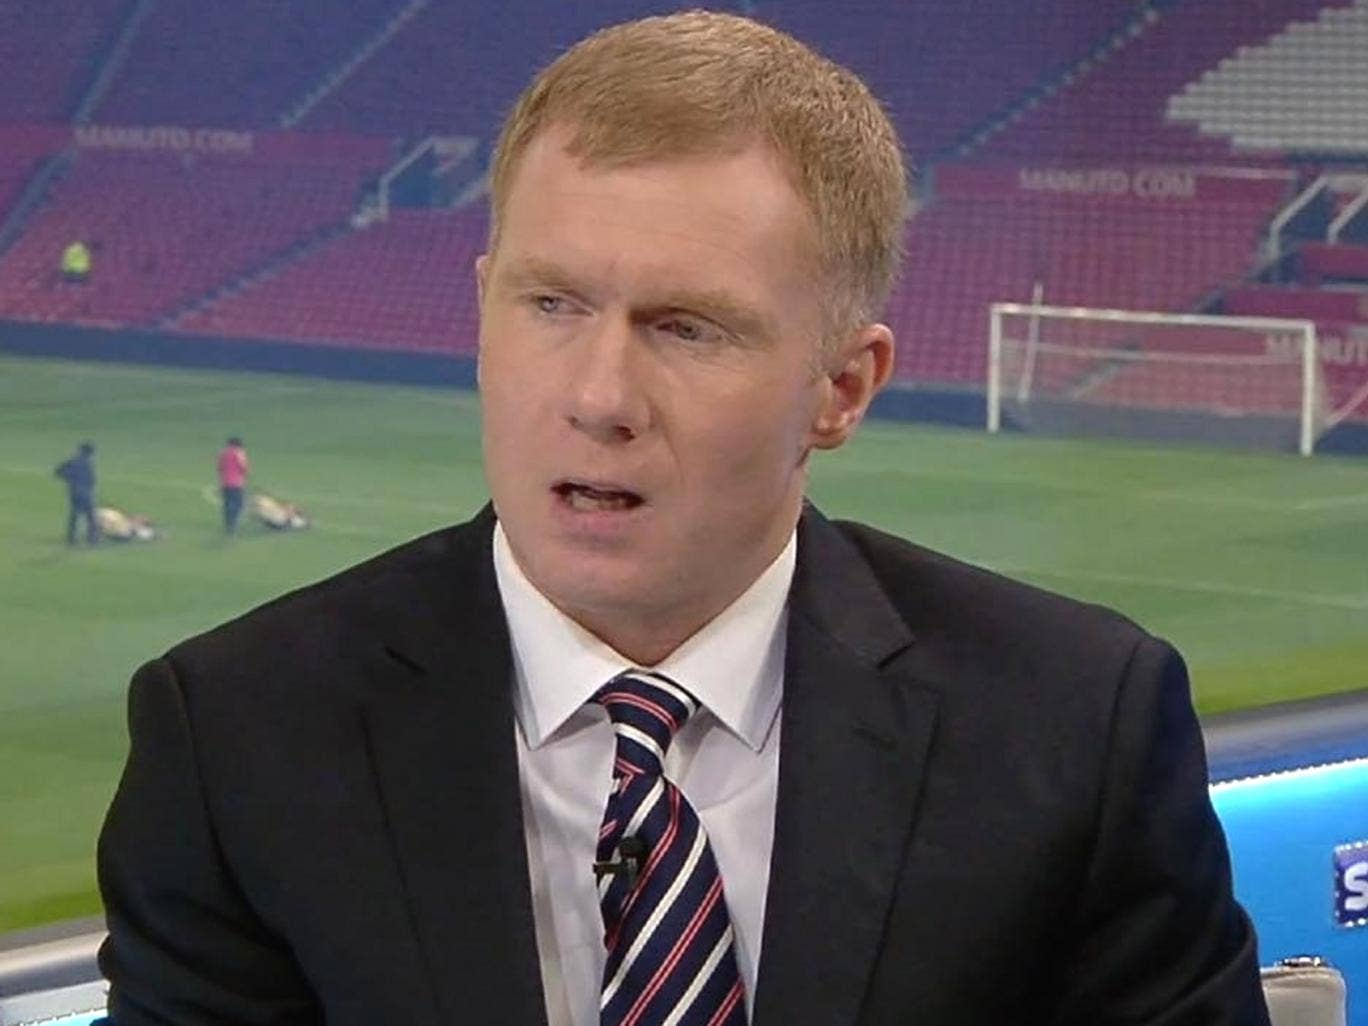 Paul Scholes expressing his criticisms after Tuesday night's game